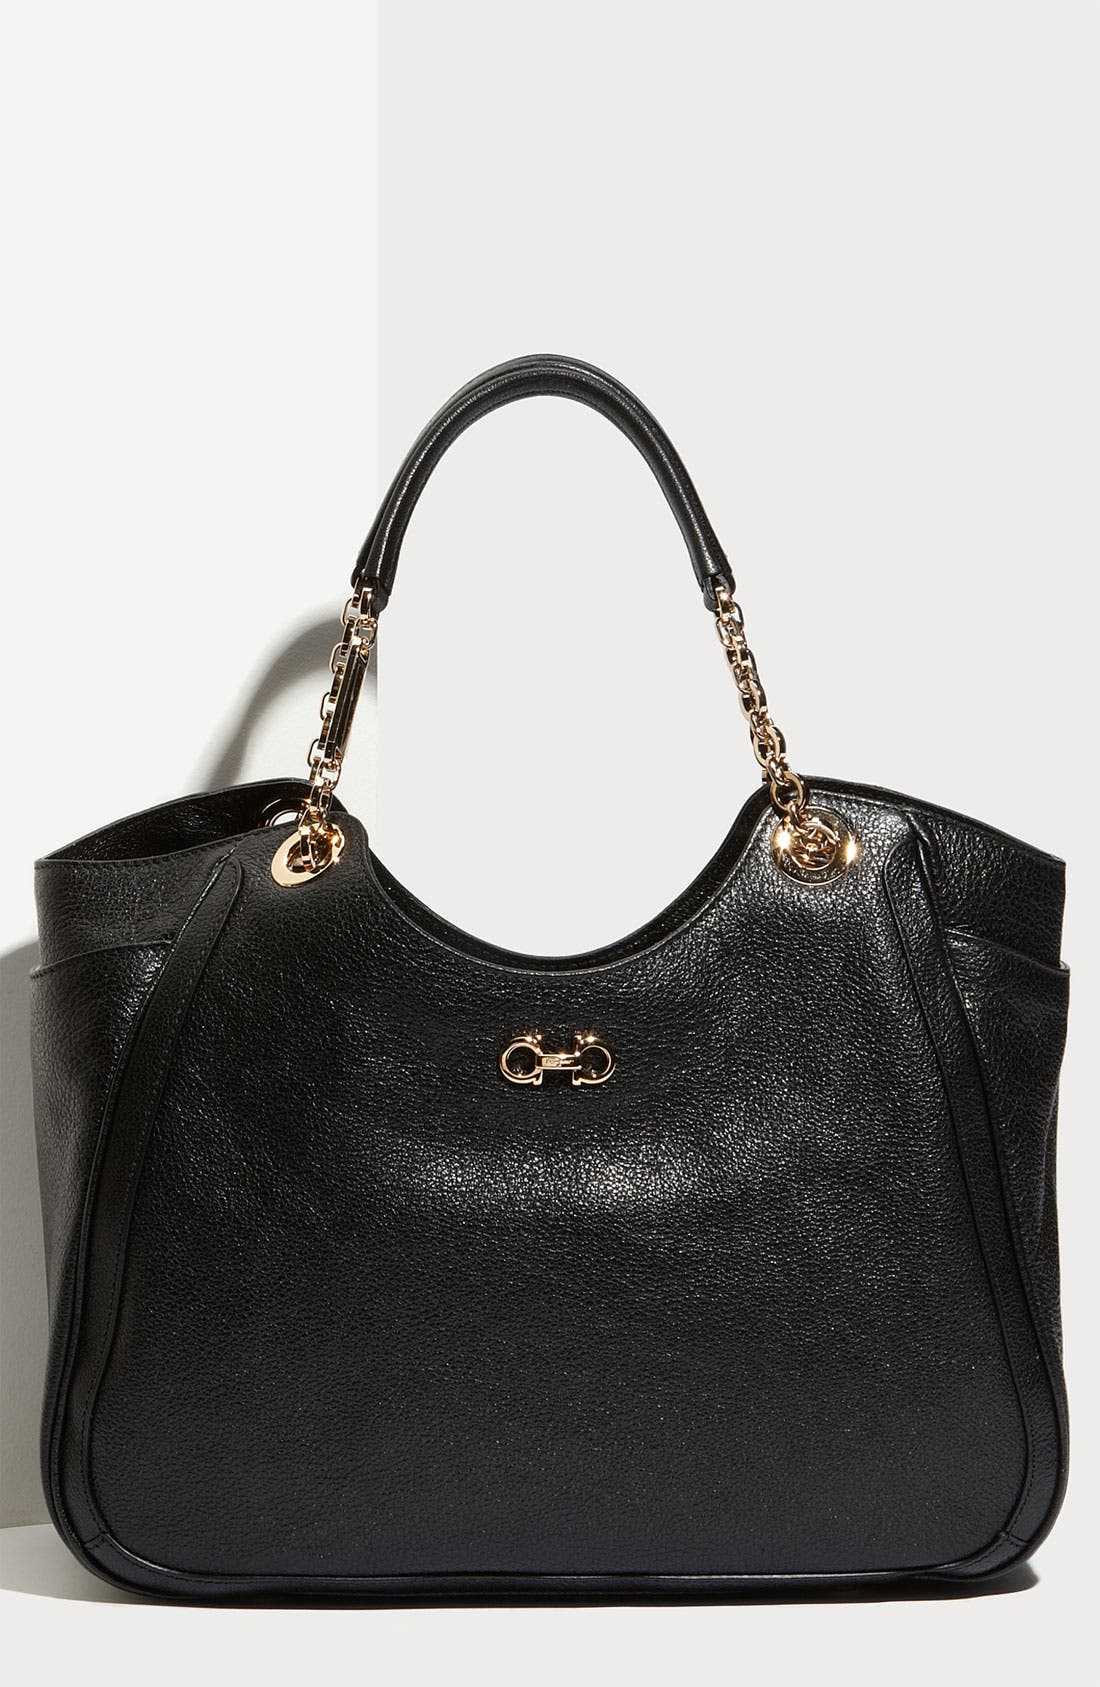 Alternate Image 1 Selected - Salvatore Ferragamo 'Betulla Chain' Leather Shopper